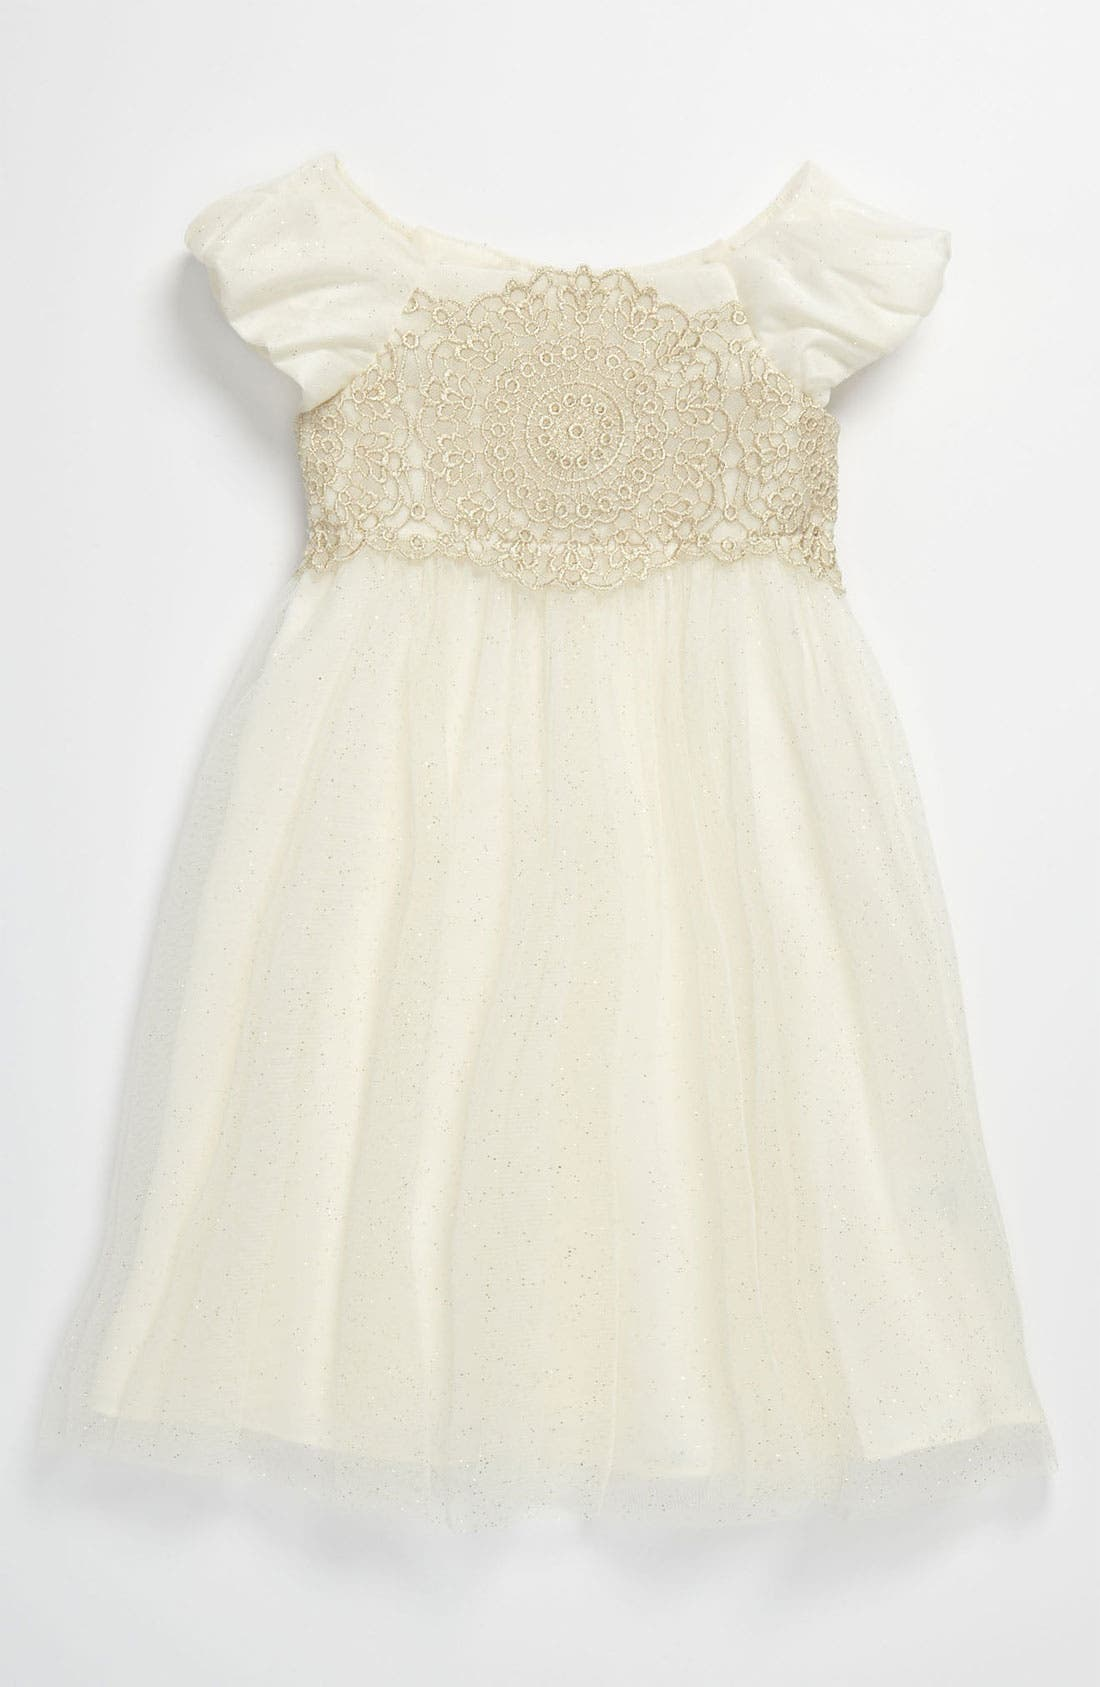 Main Image - Sweet Heart Rose Lace Empire Waist Glitter Dress (Toddler)